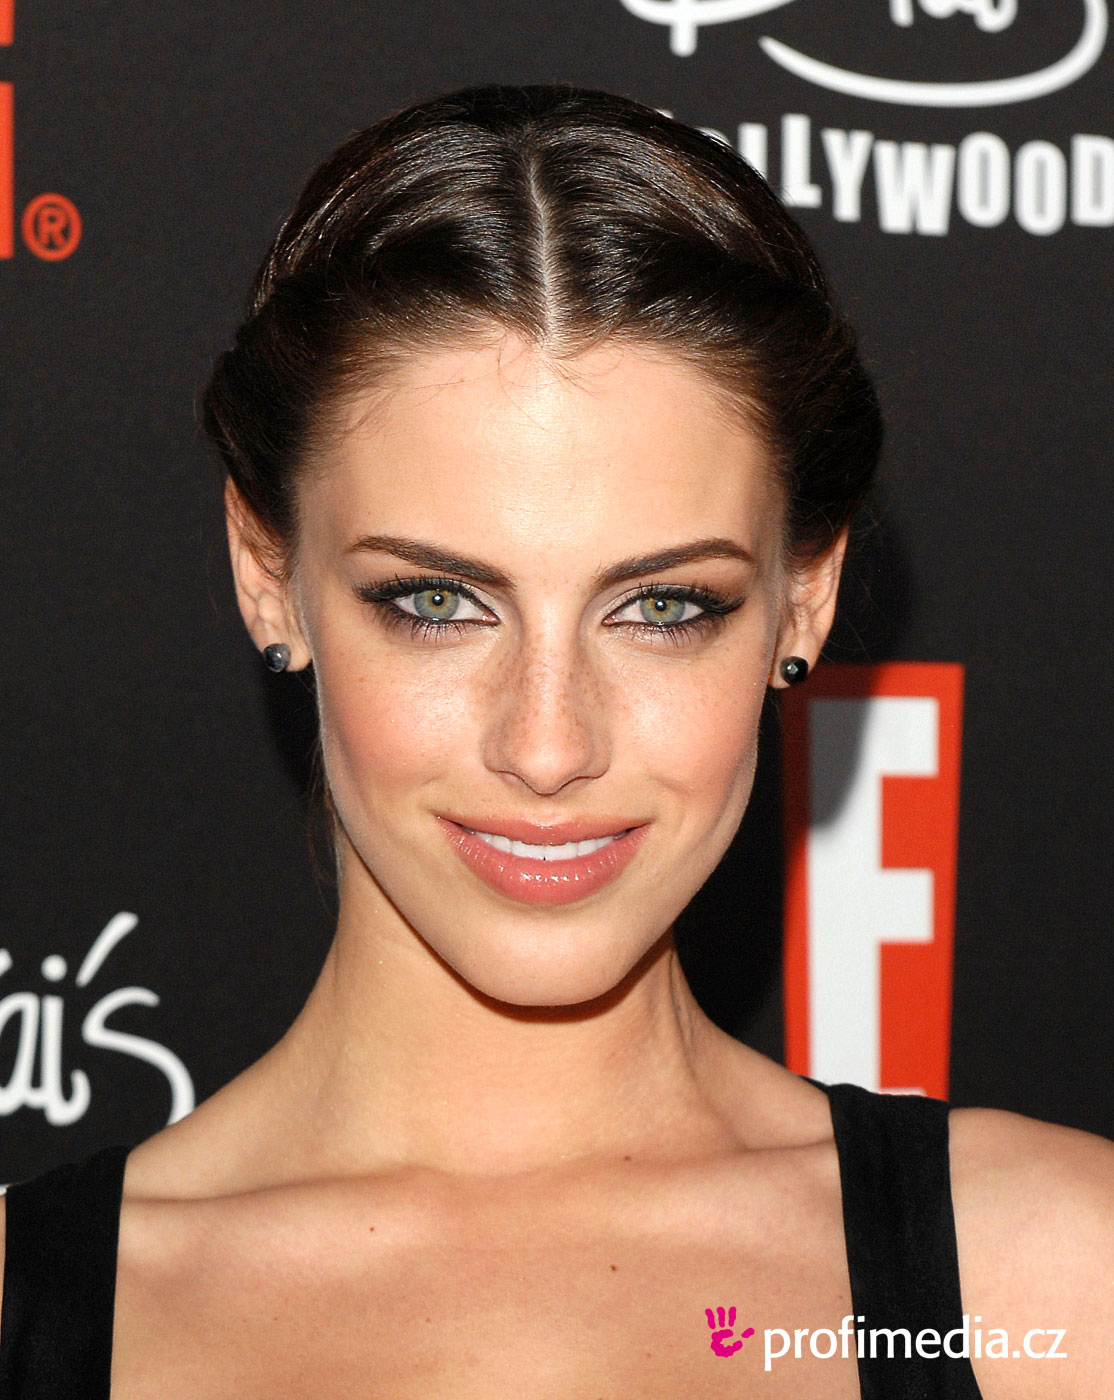 lowndes3m3010 - Jessica Lowndes